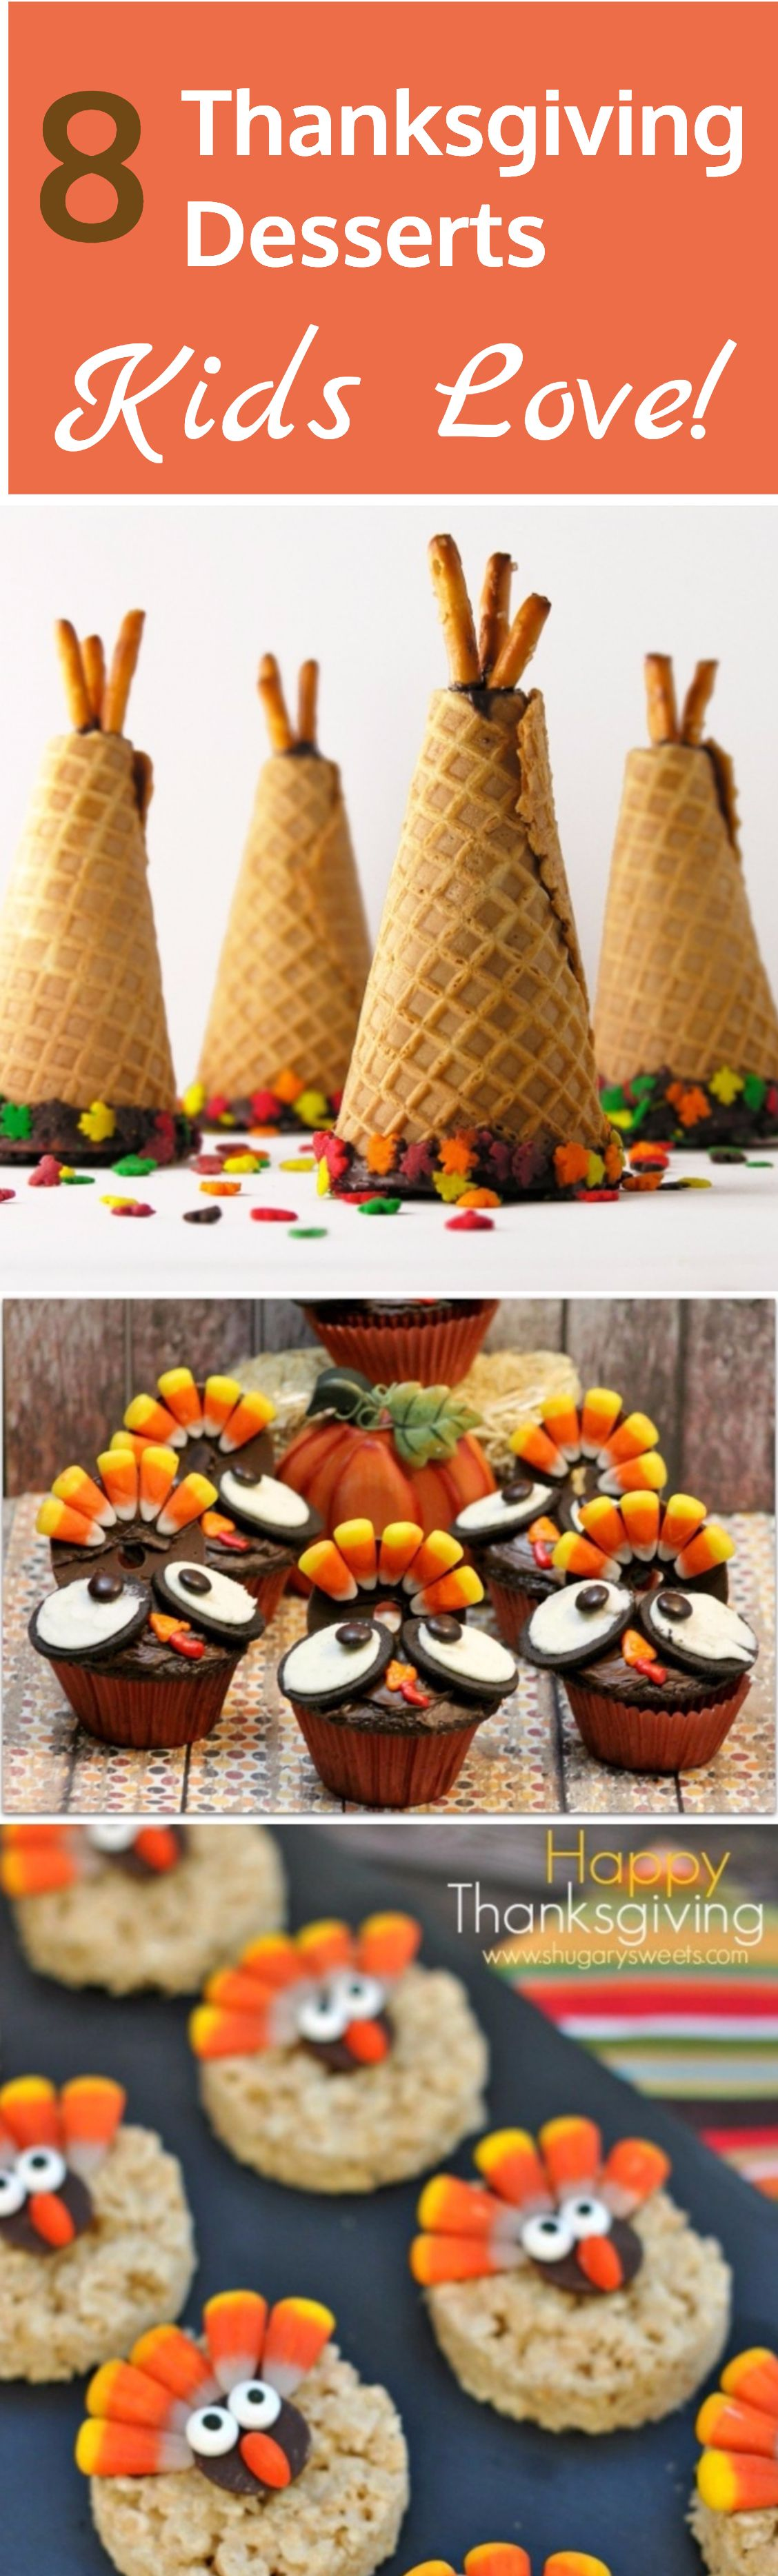 Thanksgiving Desserts Kids Love - 8 Fun & Easy Kid-Approved Desserts